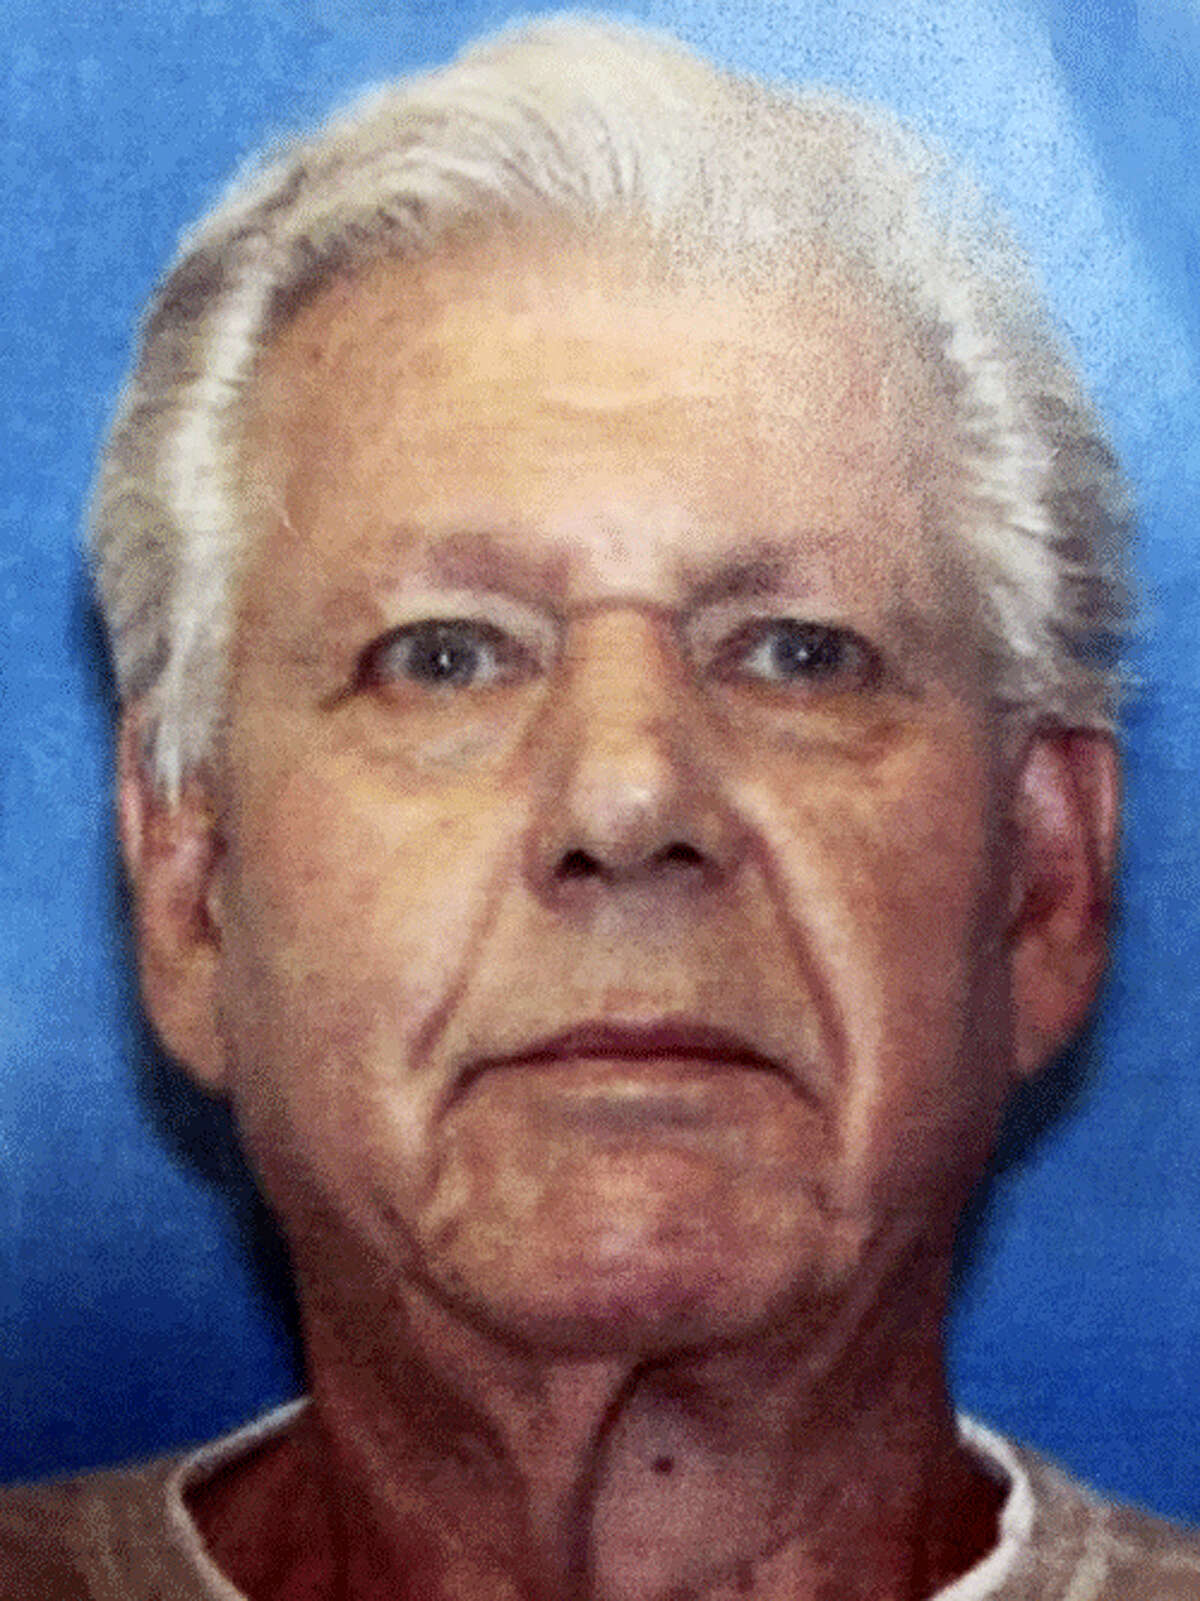 This undated photo released by the Georgia Department of Corrections shows Robert Stackowitz, 71, arrested Monday, May 9, 2016, by U.S. Marshals and Connecticut State Police in Sherman 48 years after escaping from a Georgia prison work camp.